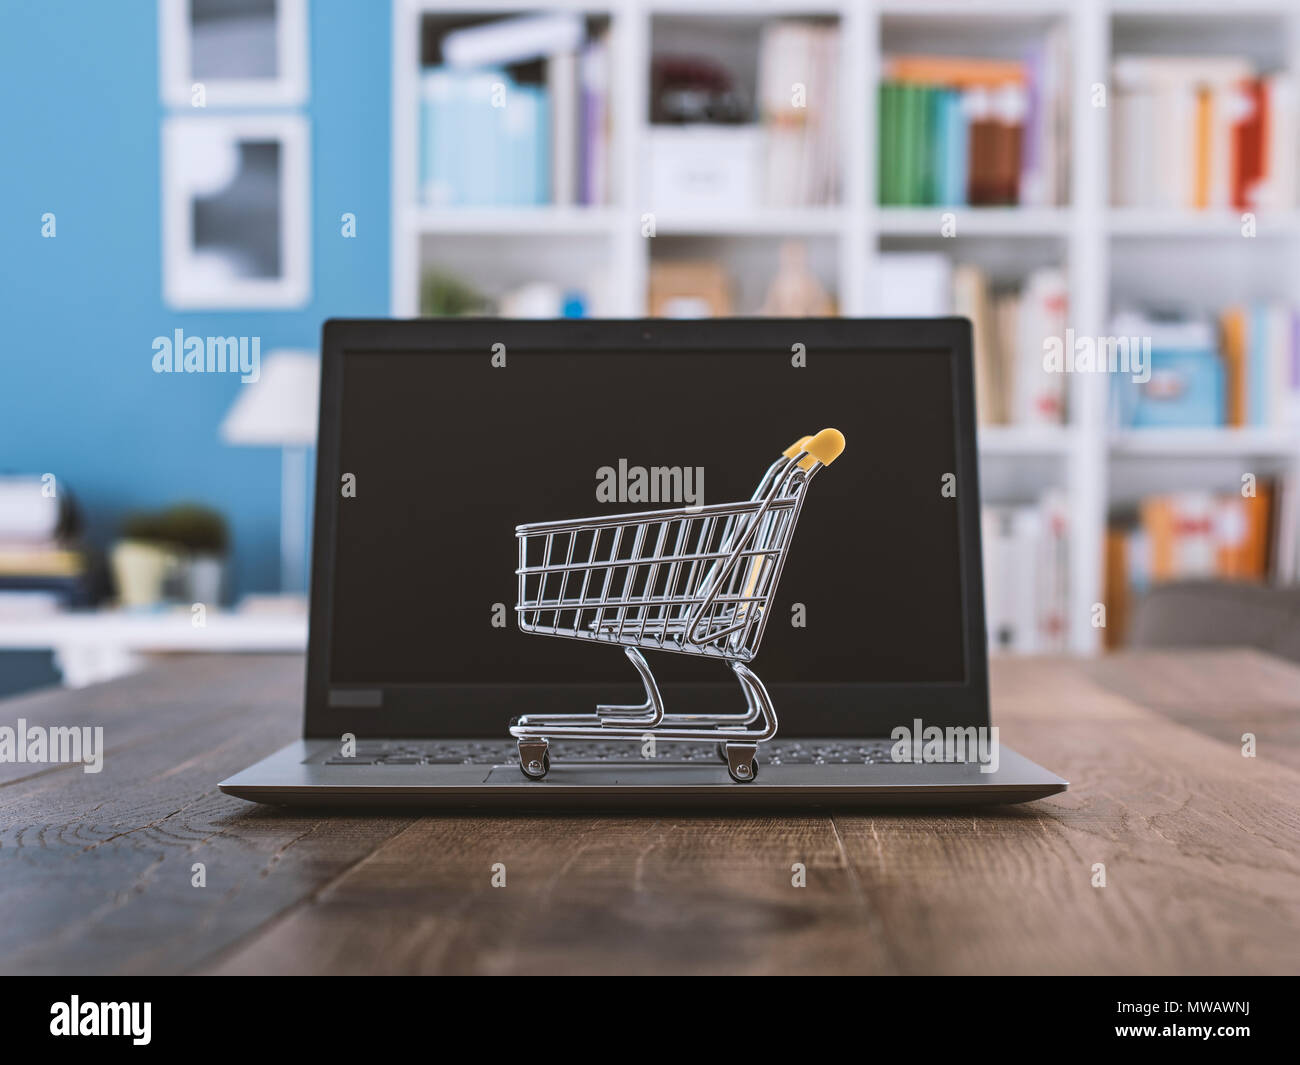 91049f2b9c9 Miniature shopping cart and laptop on a desk  online shopping and  e-commerce concept